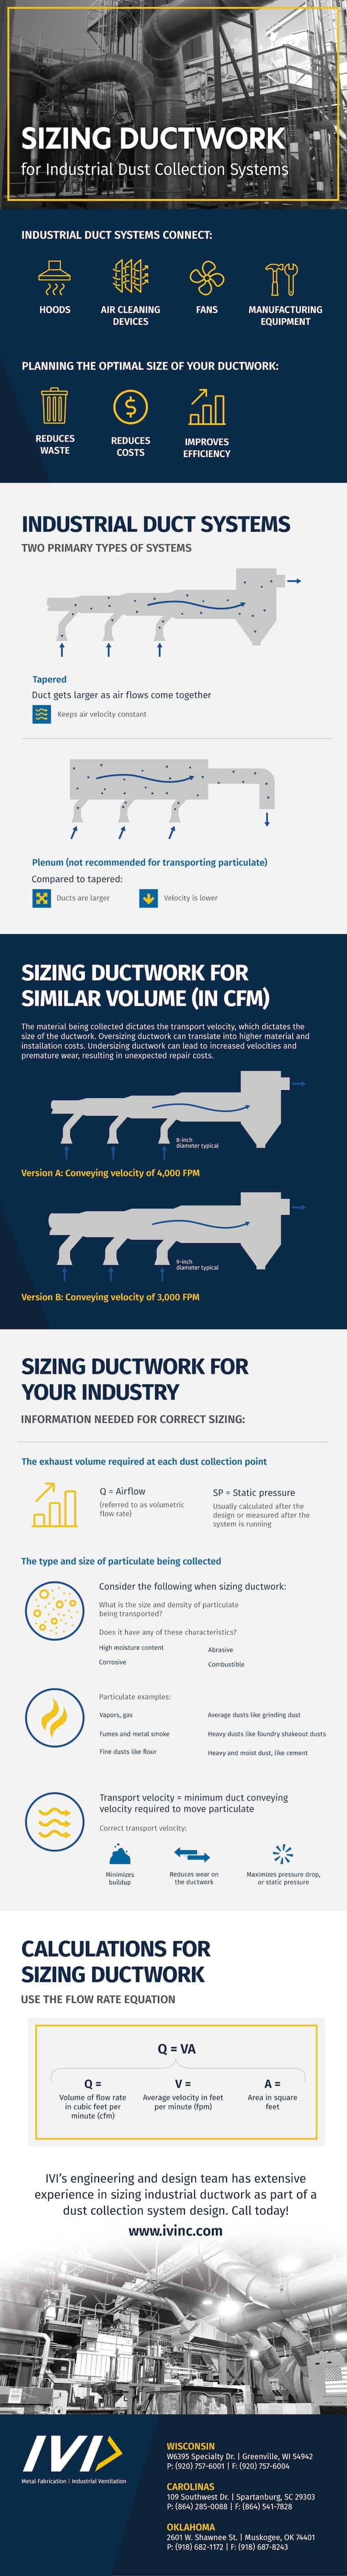 Infographic about sizing ductwork